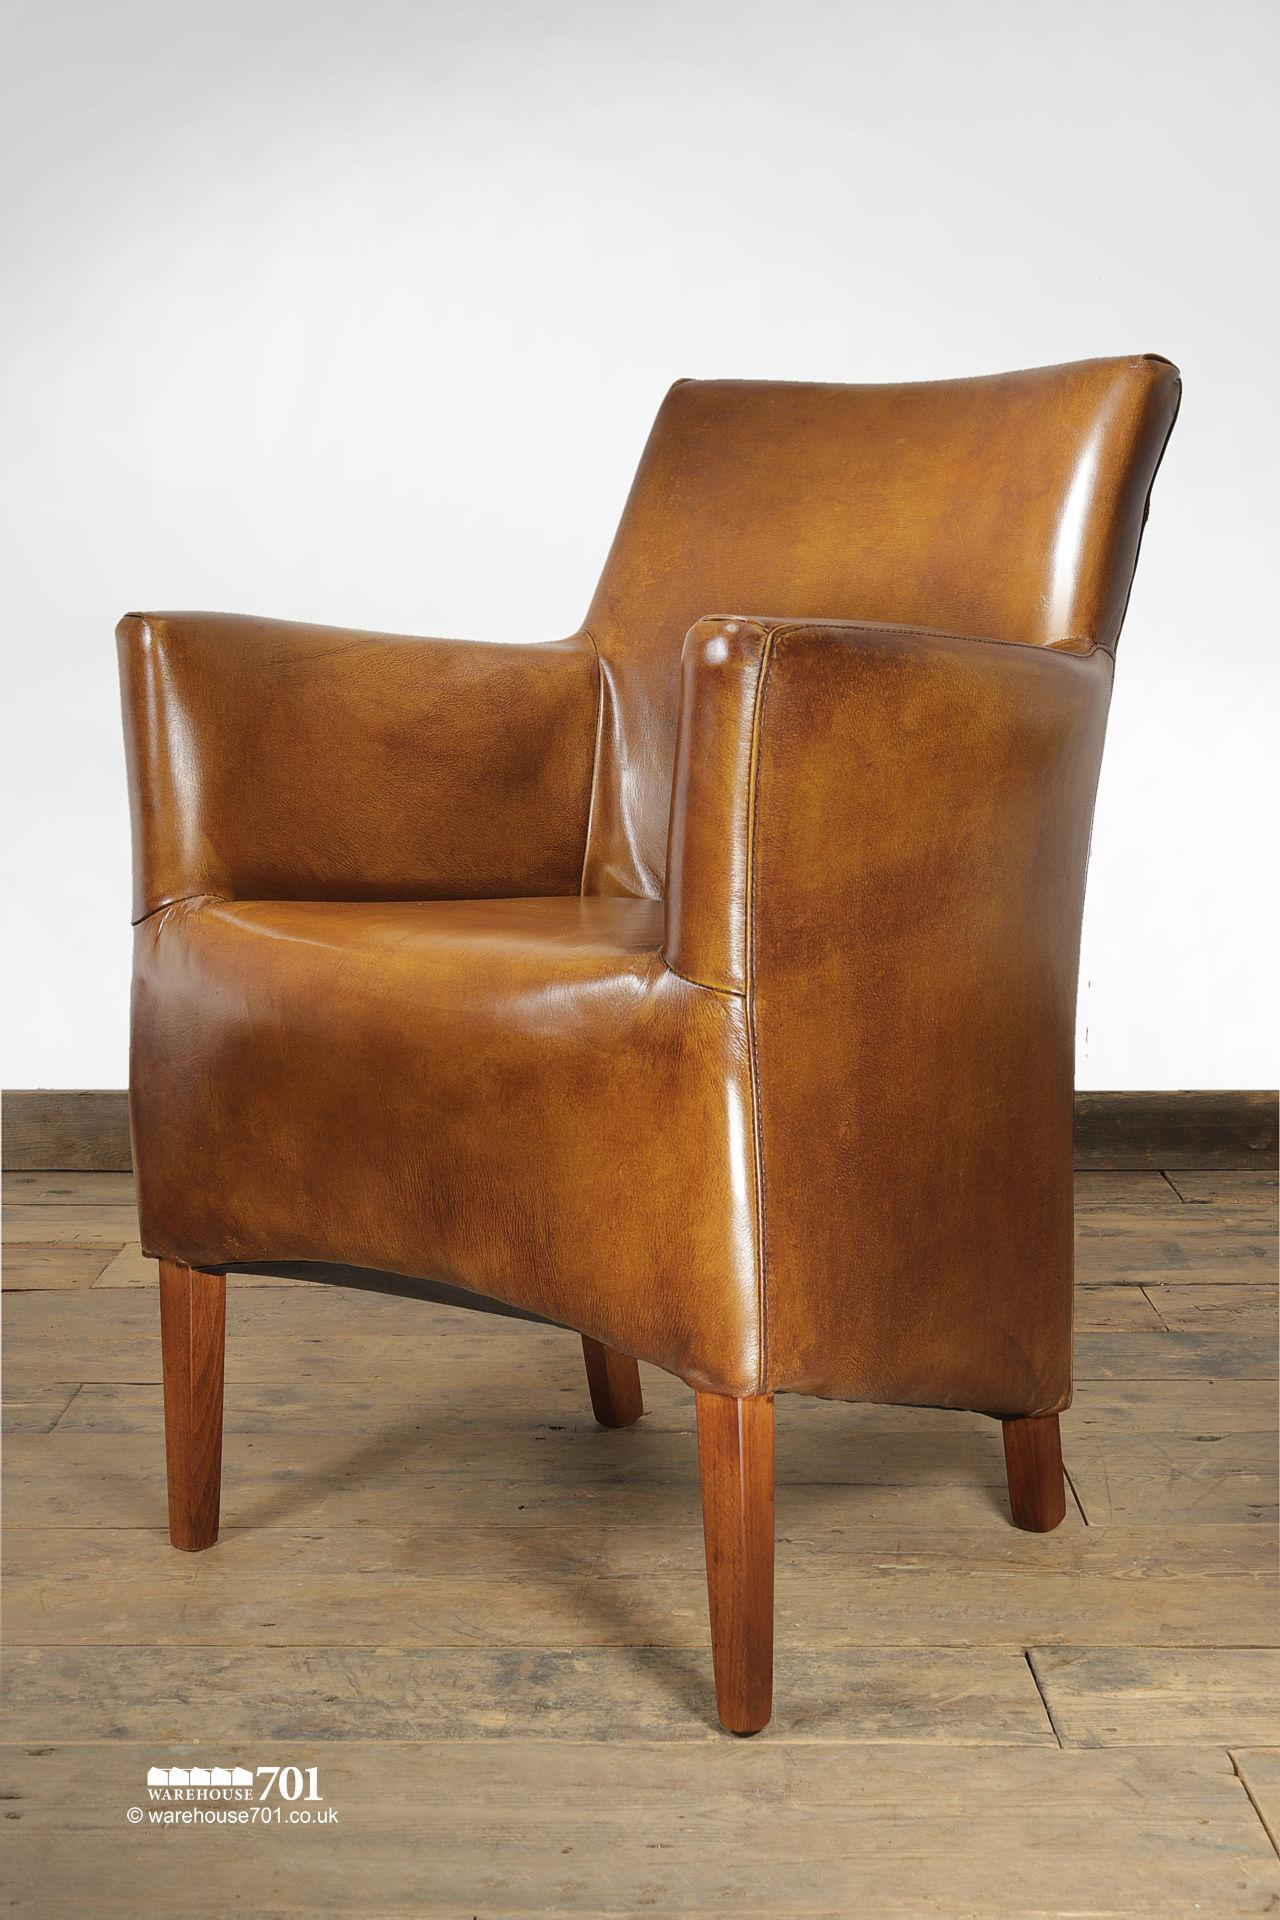 NEW Stylish and Sumptuous Compact Stitched Leather Armchair #3